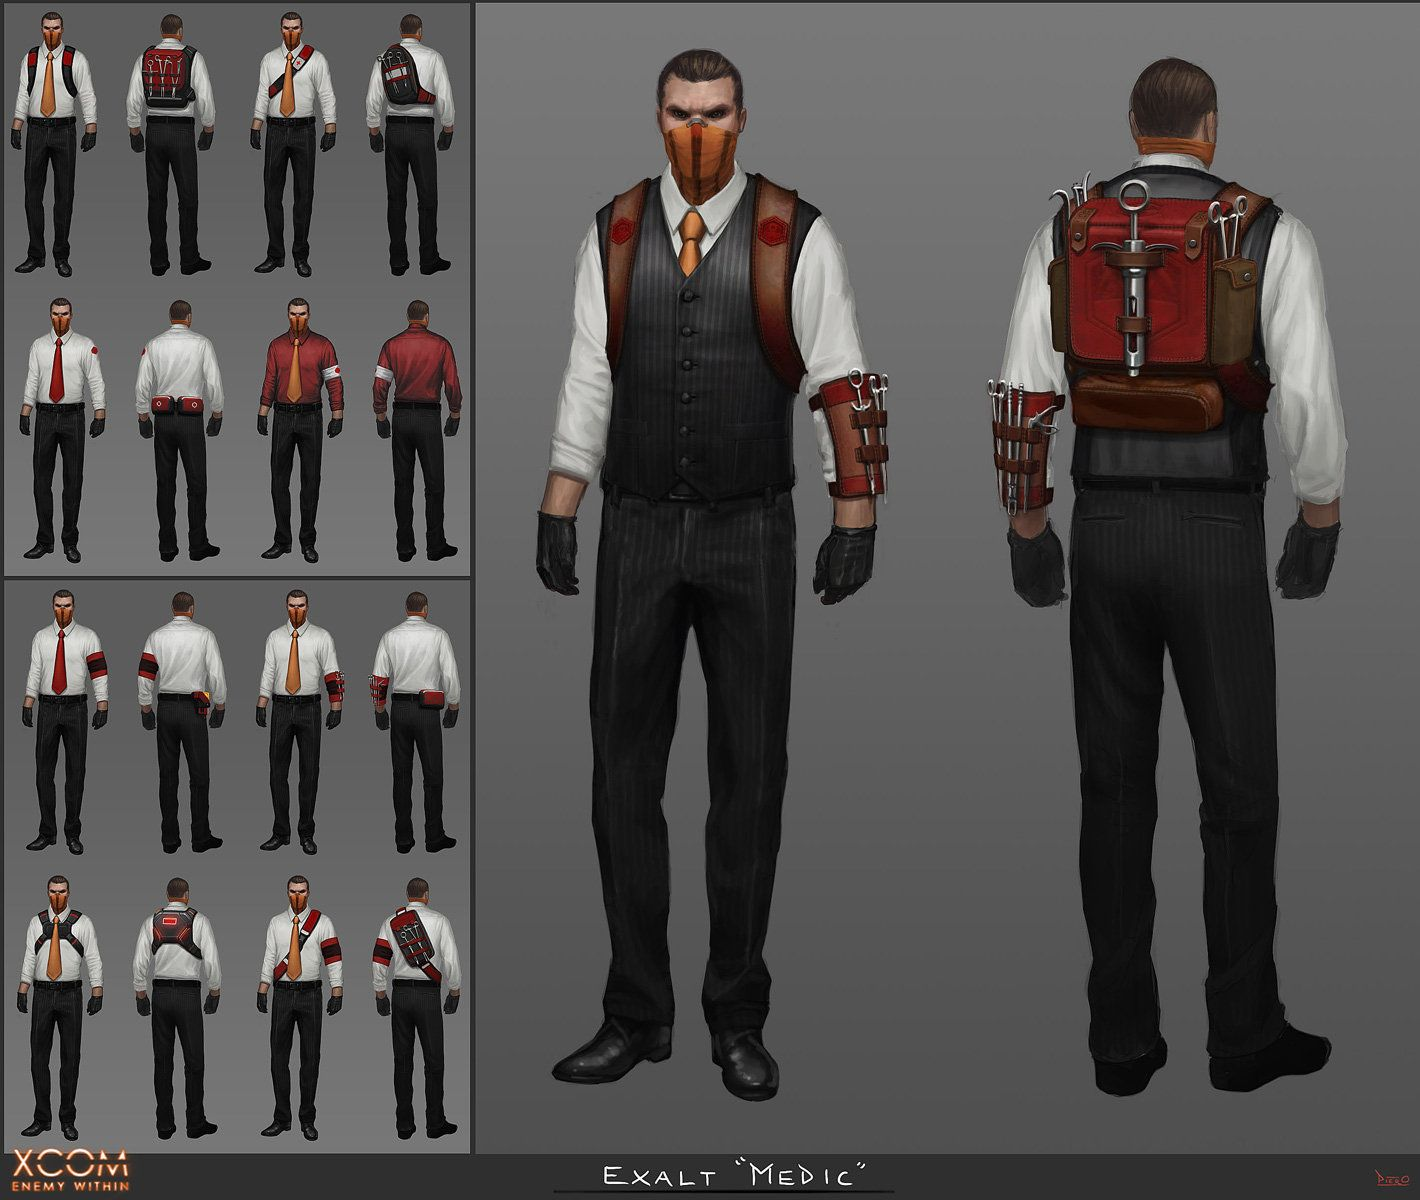 Piero macgowan exalt medic The secret world, Concept art